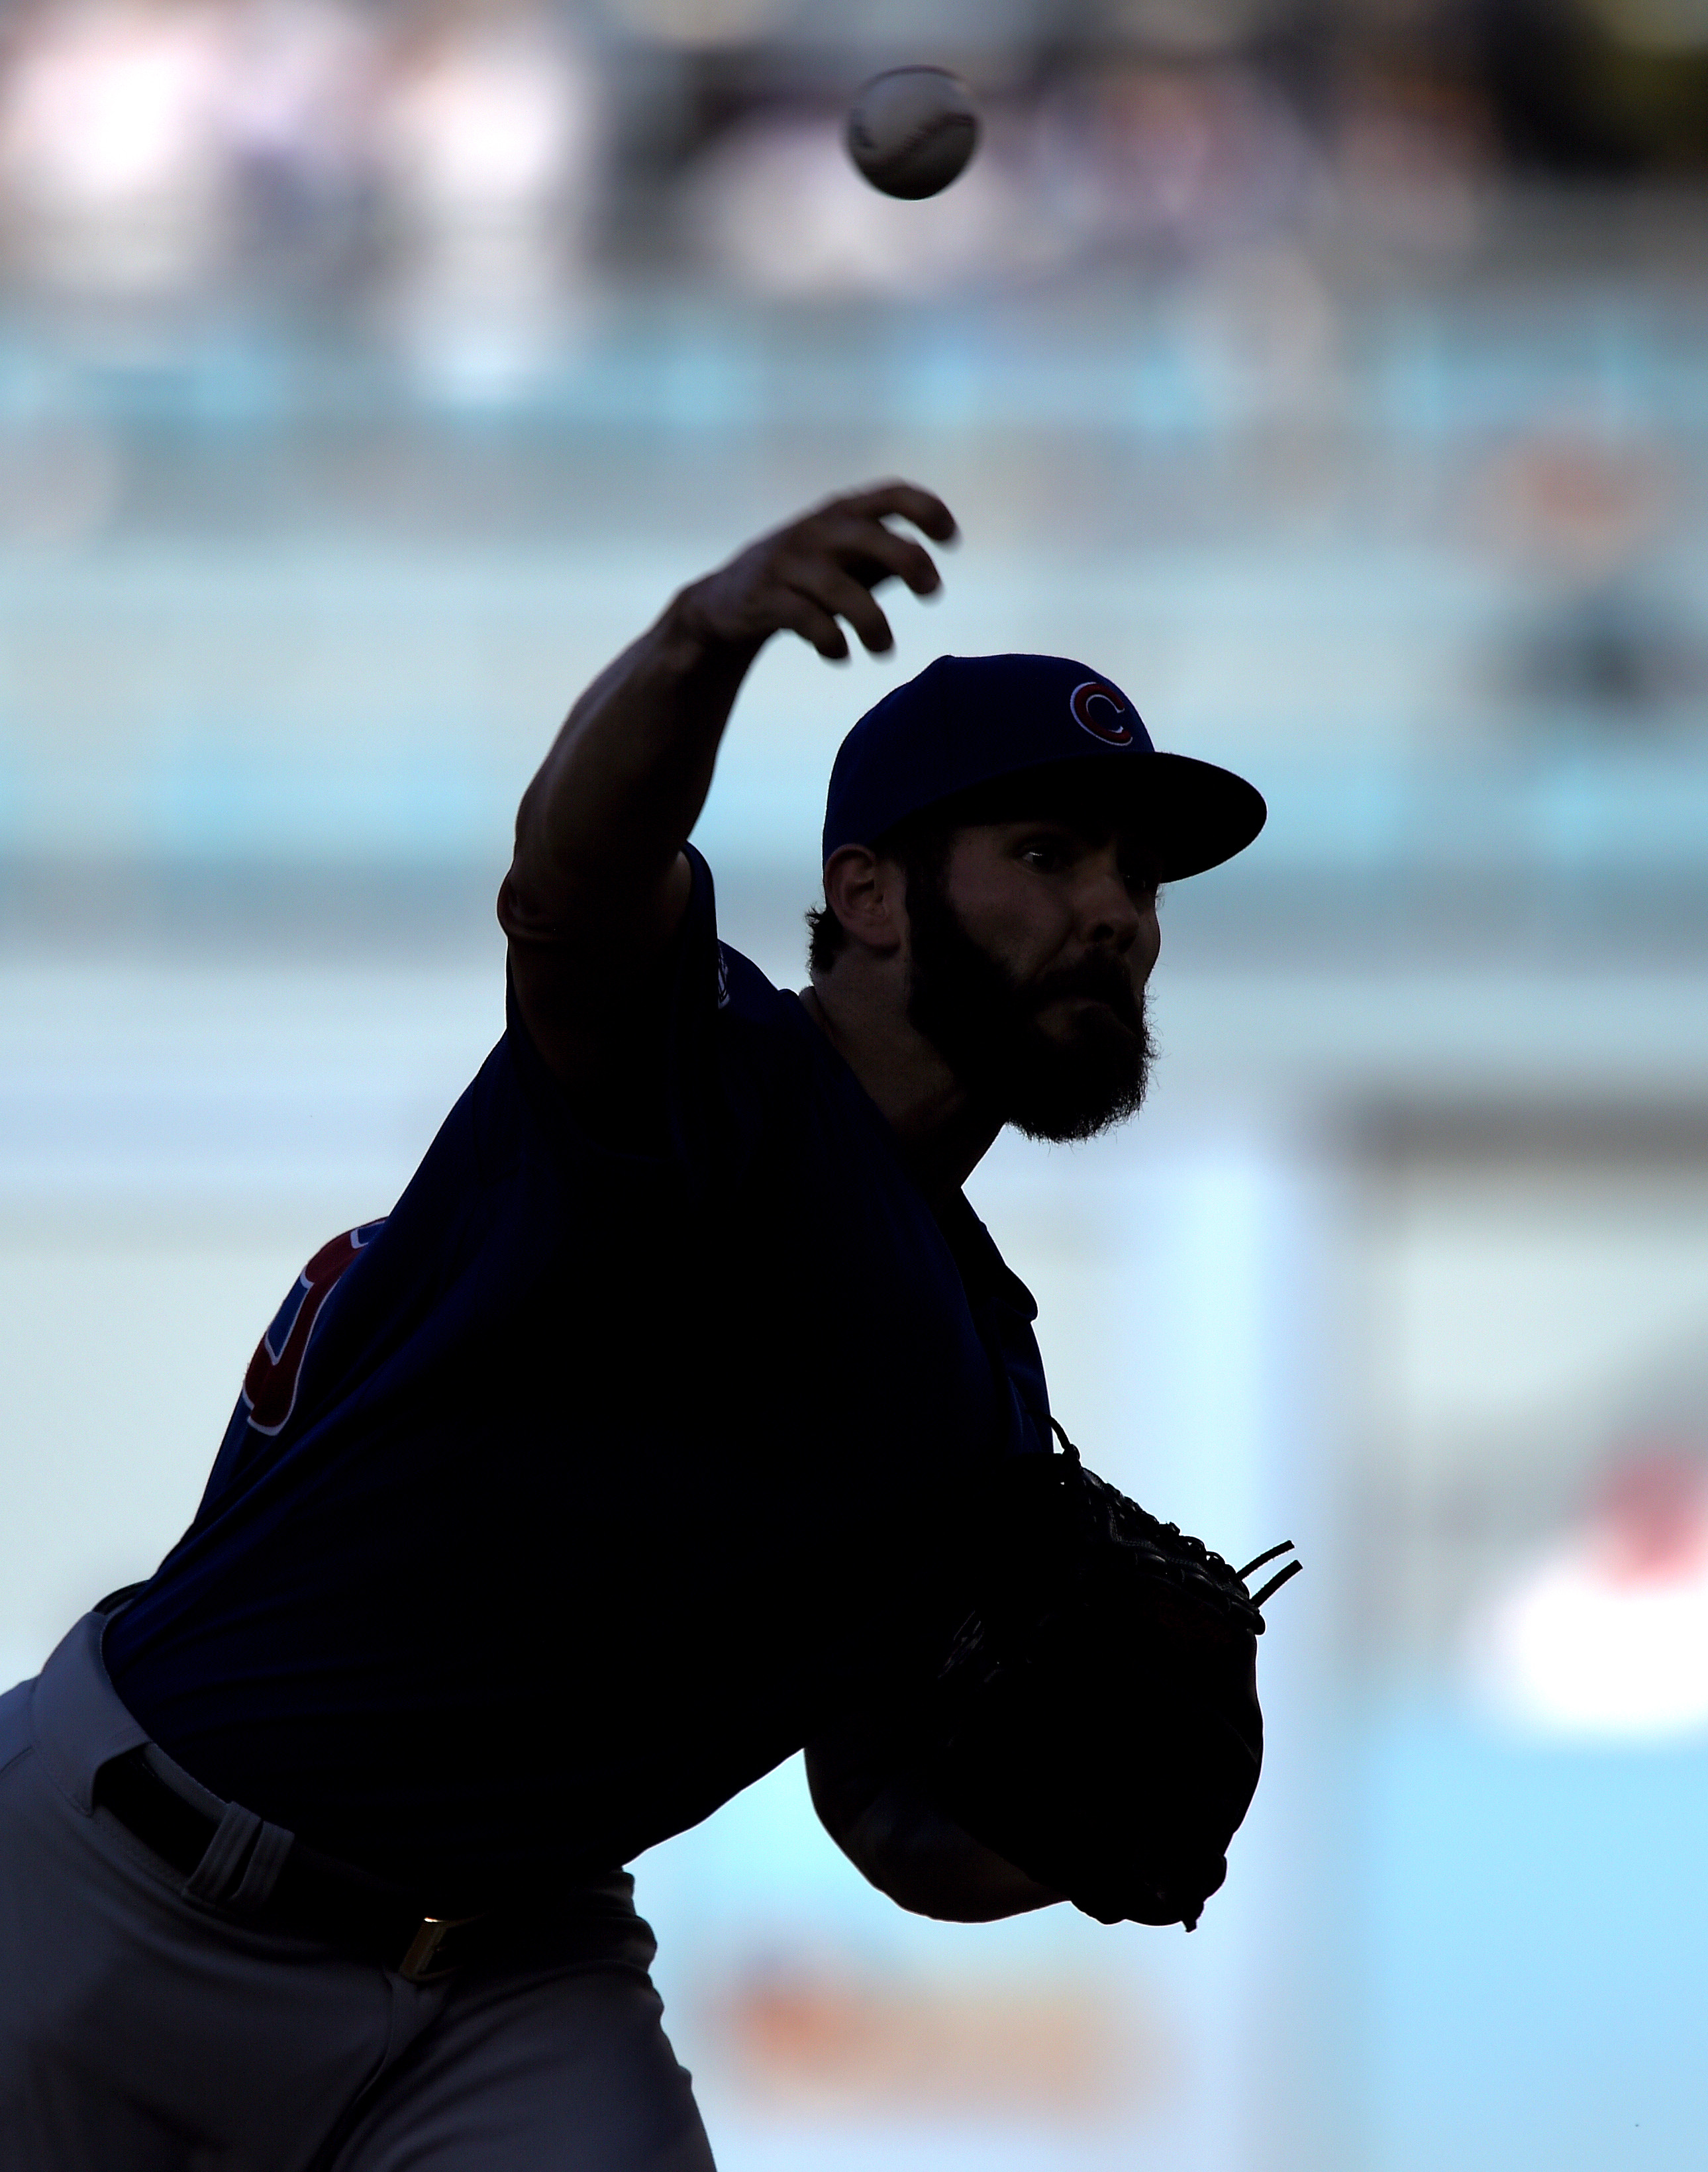 Chicago Cubs starting pitcher Jake Arrieta throws during the first inning of a baseball game against the Los Angeles Dodgers, Sunday, Aug. 30, 2015, in Los Angeles. (AP Photo/Mark J. Terrill)